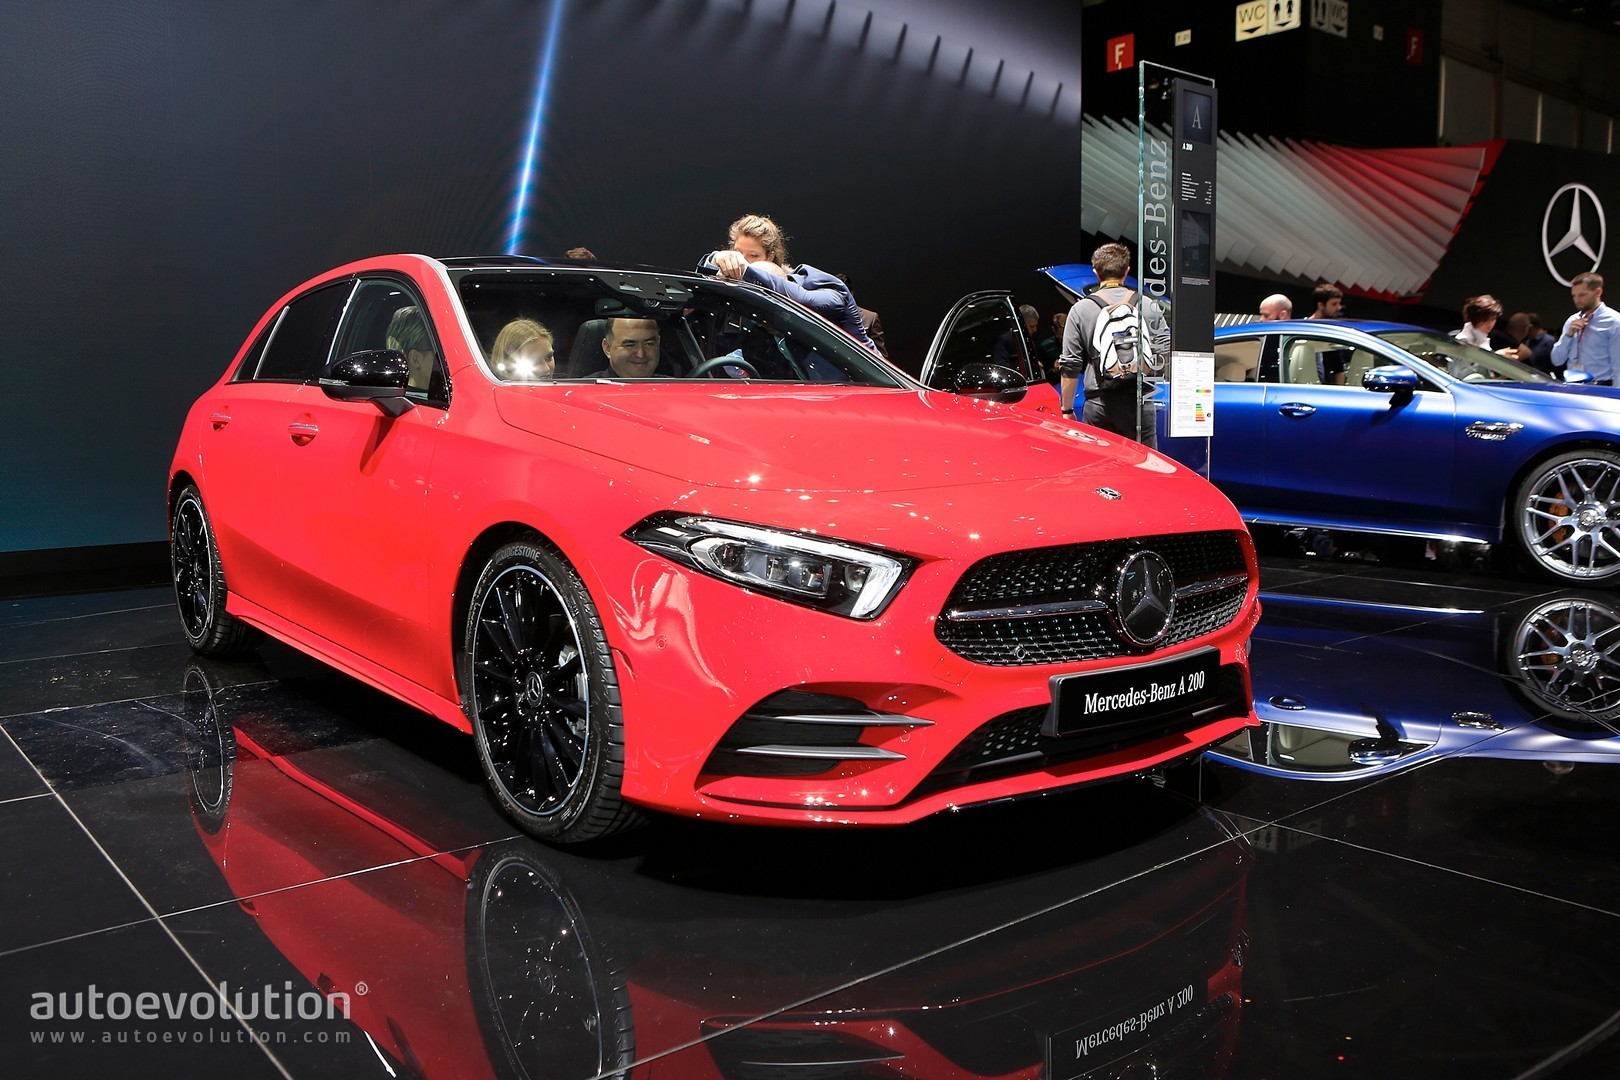 2019 Mercedes Benz A Class Redefines The Premium Compact